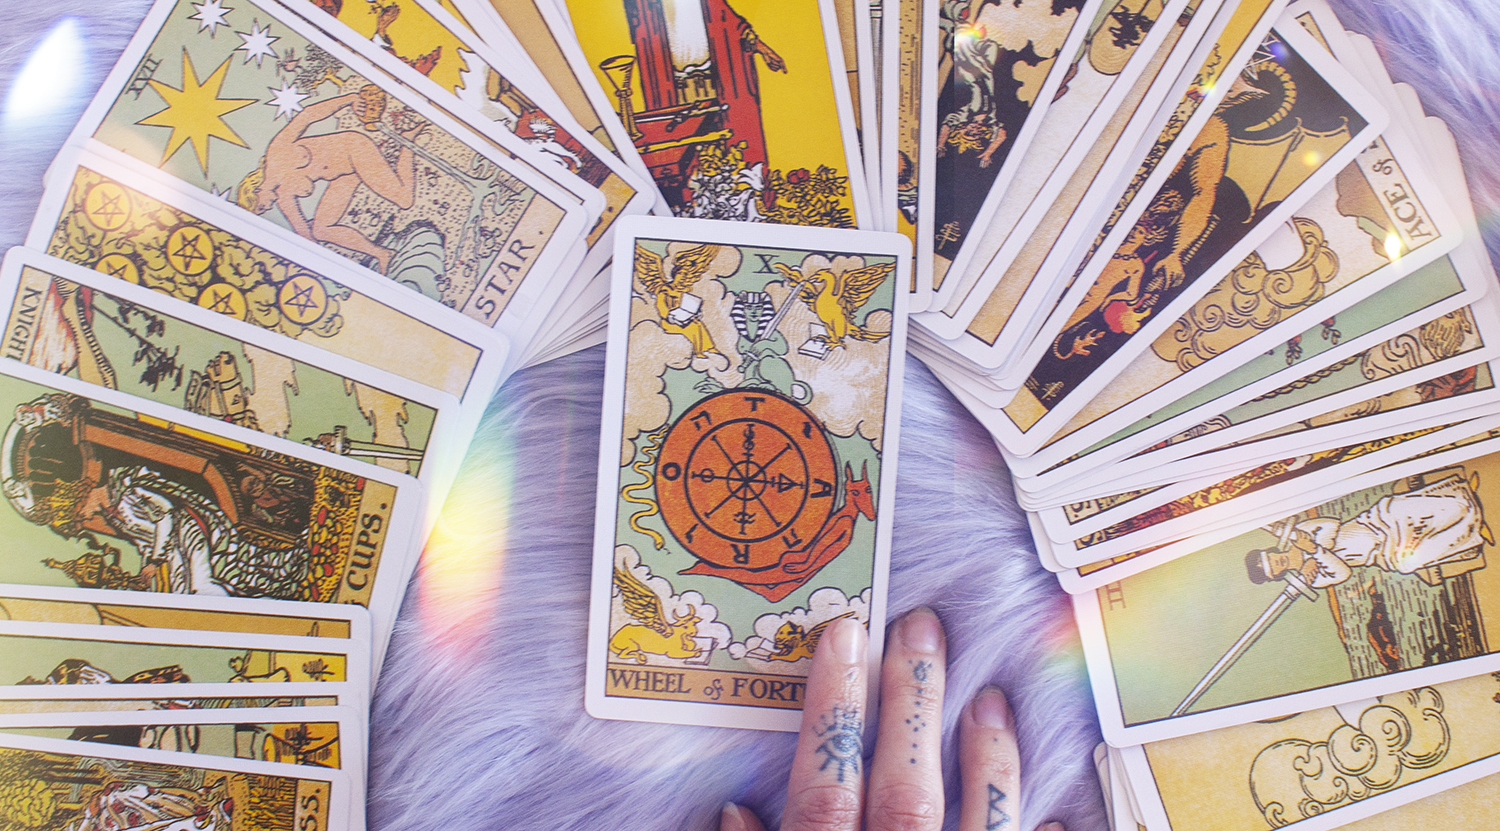 understanding the tarot meanings quickly learning tarot correspondences